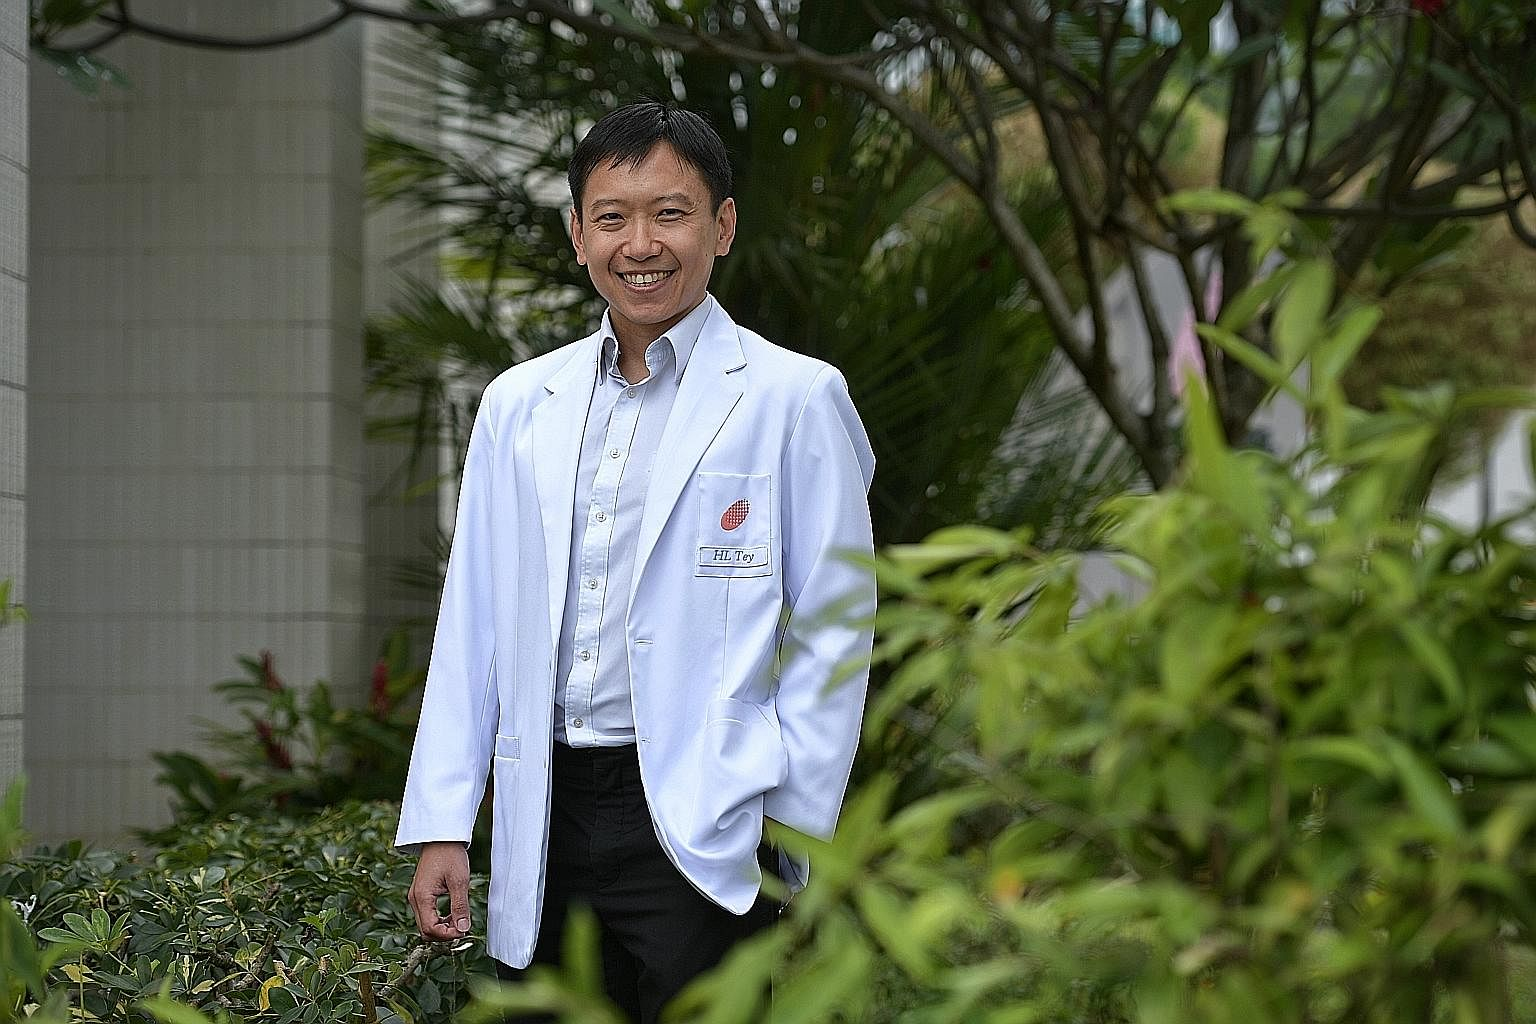 Skin specialist goes the extra mile to ease his patients' woes, Health News & Top Stories - The Straits Times